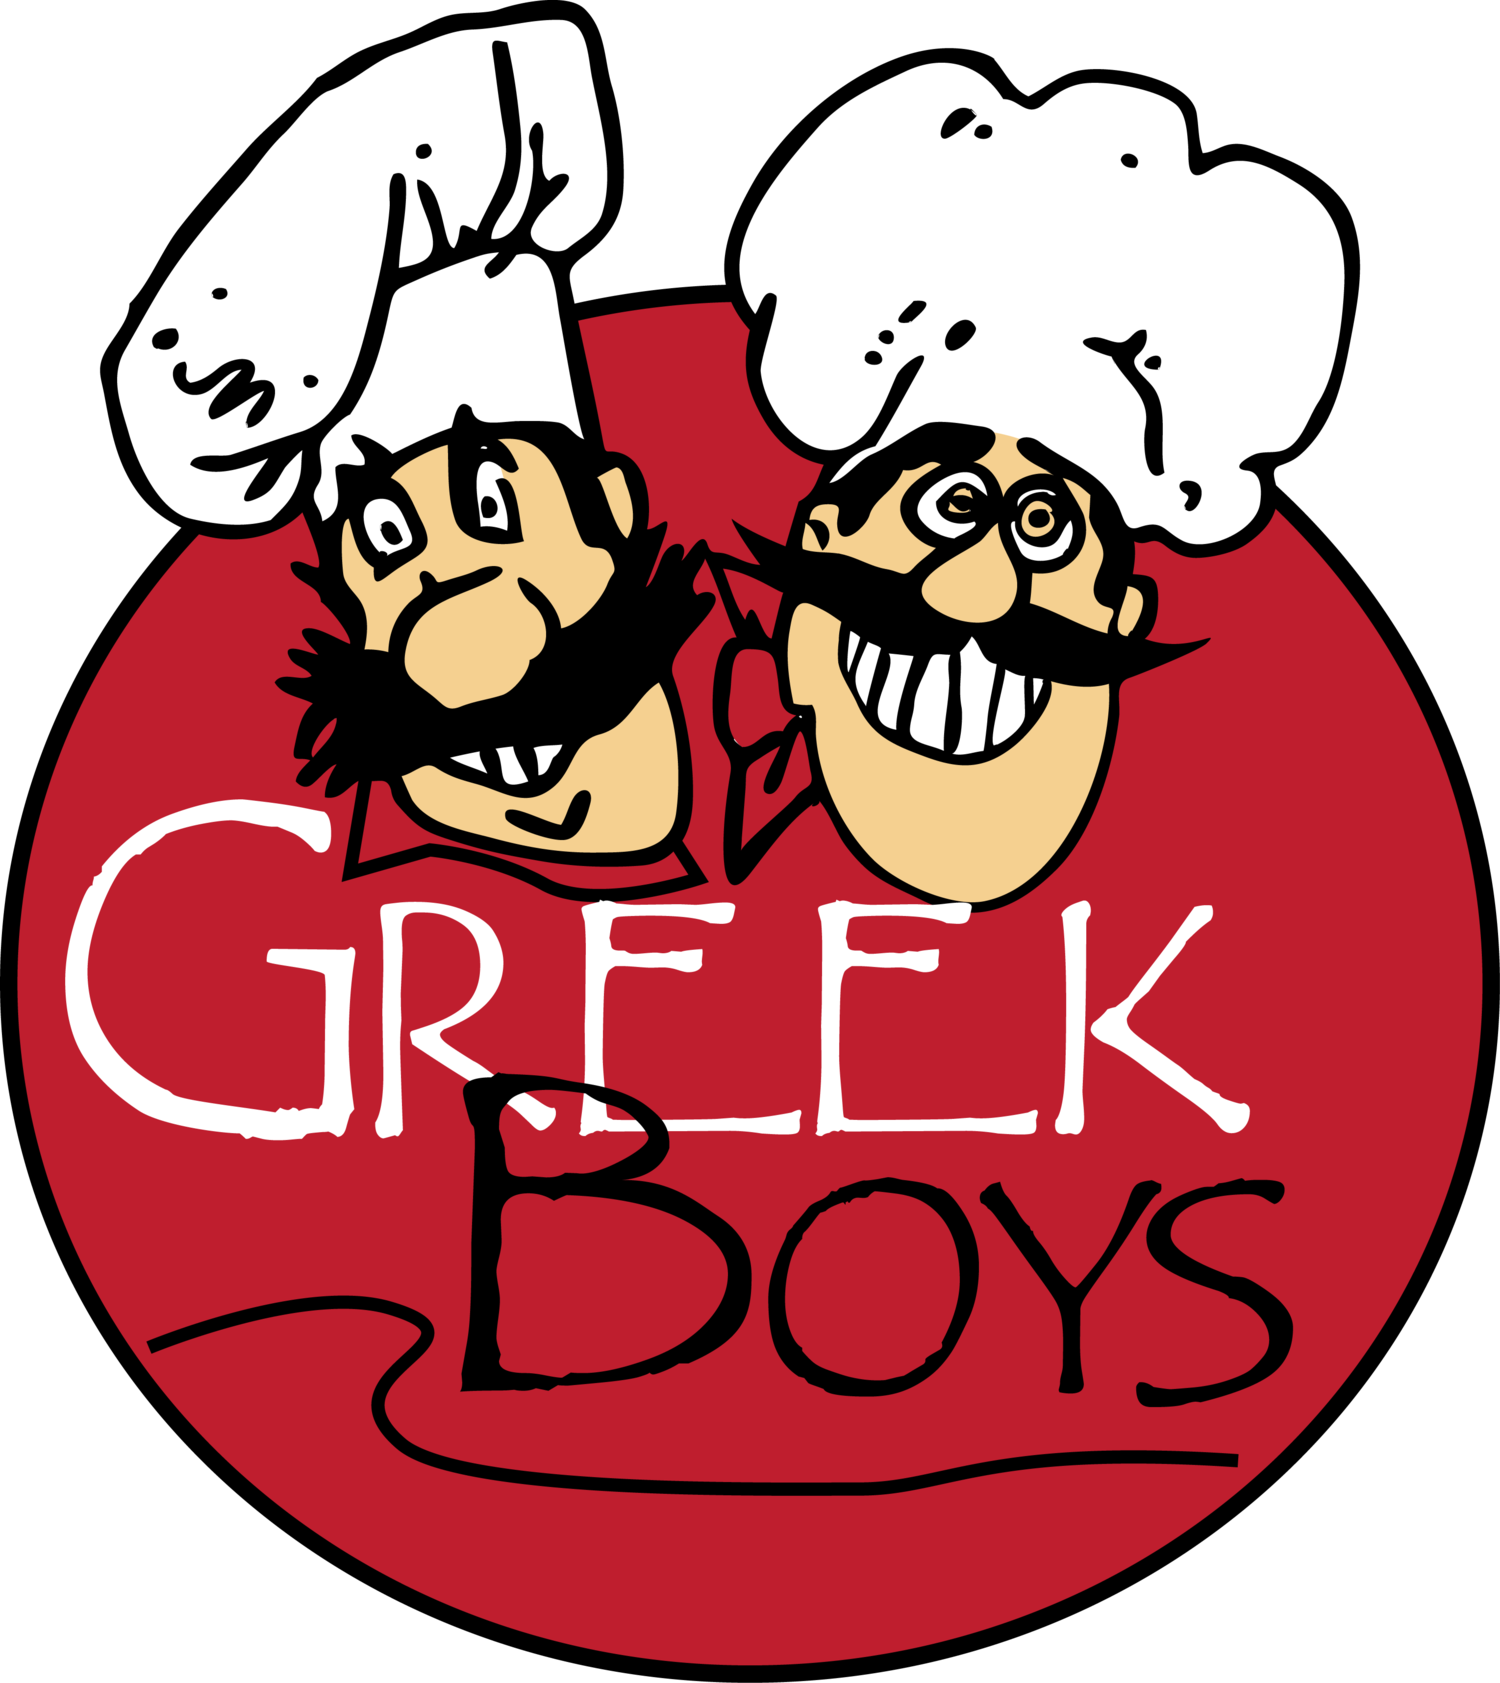 Greek Boys